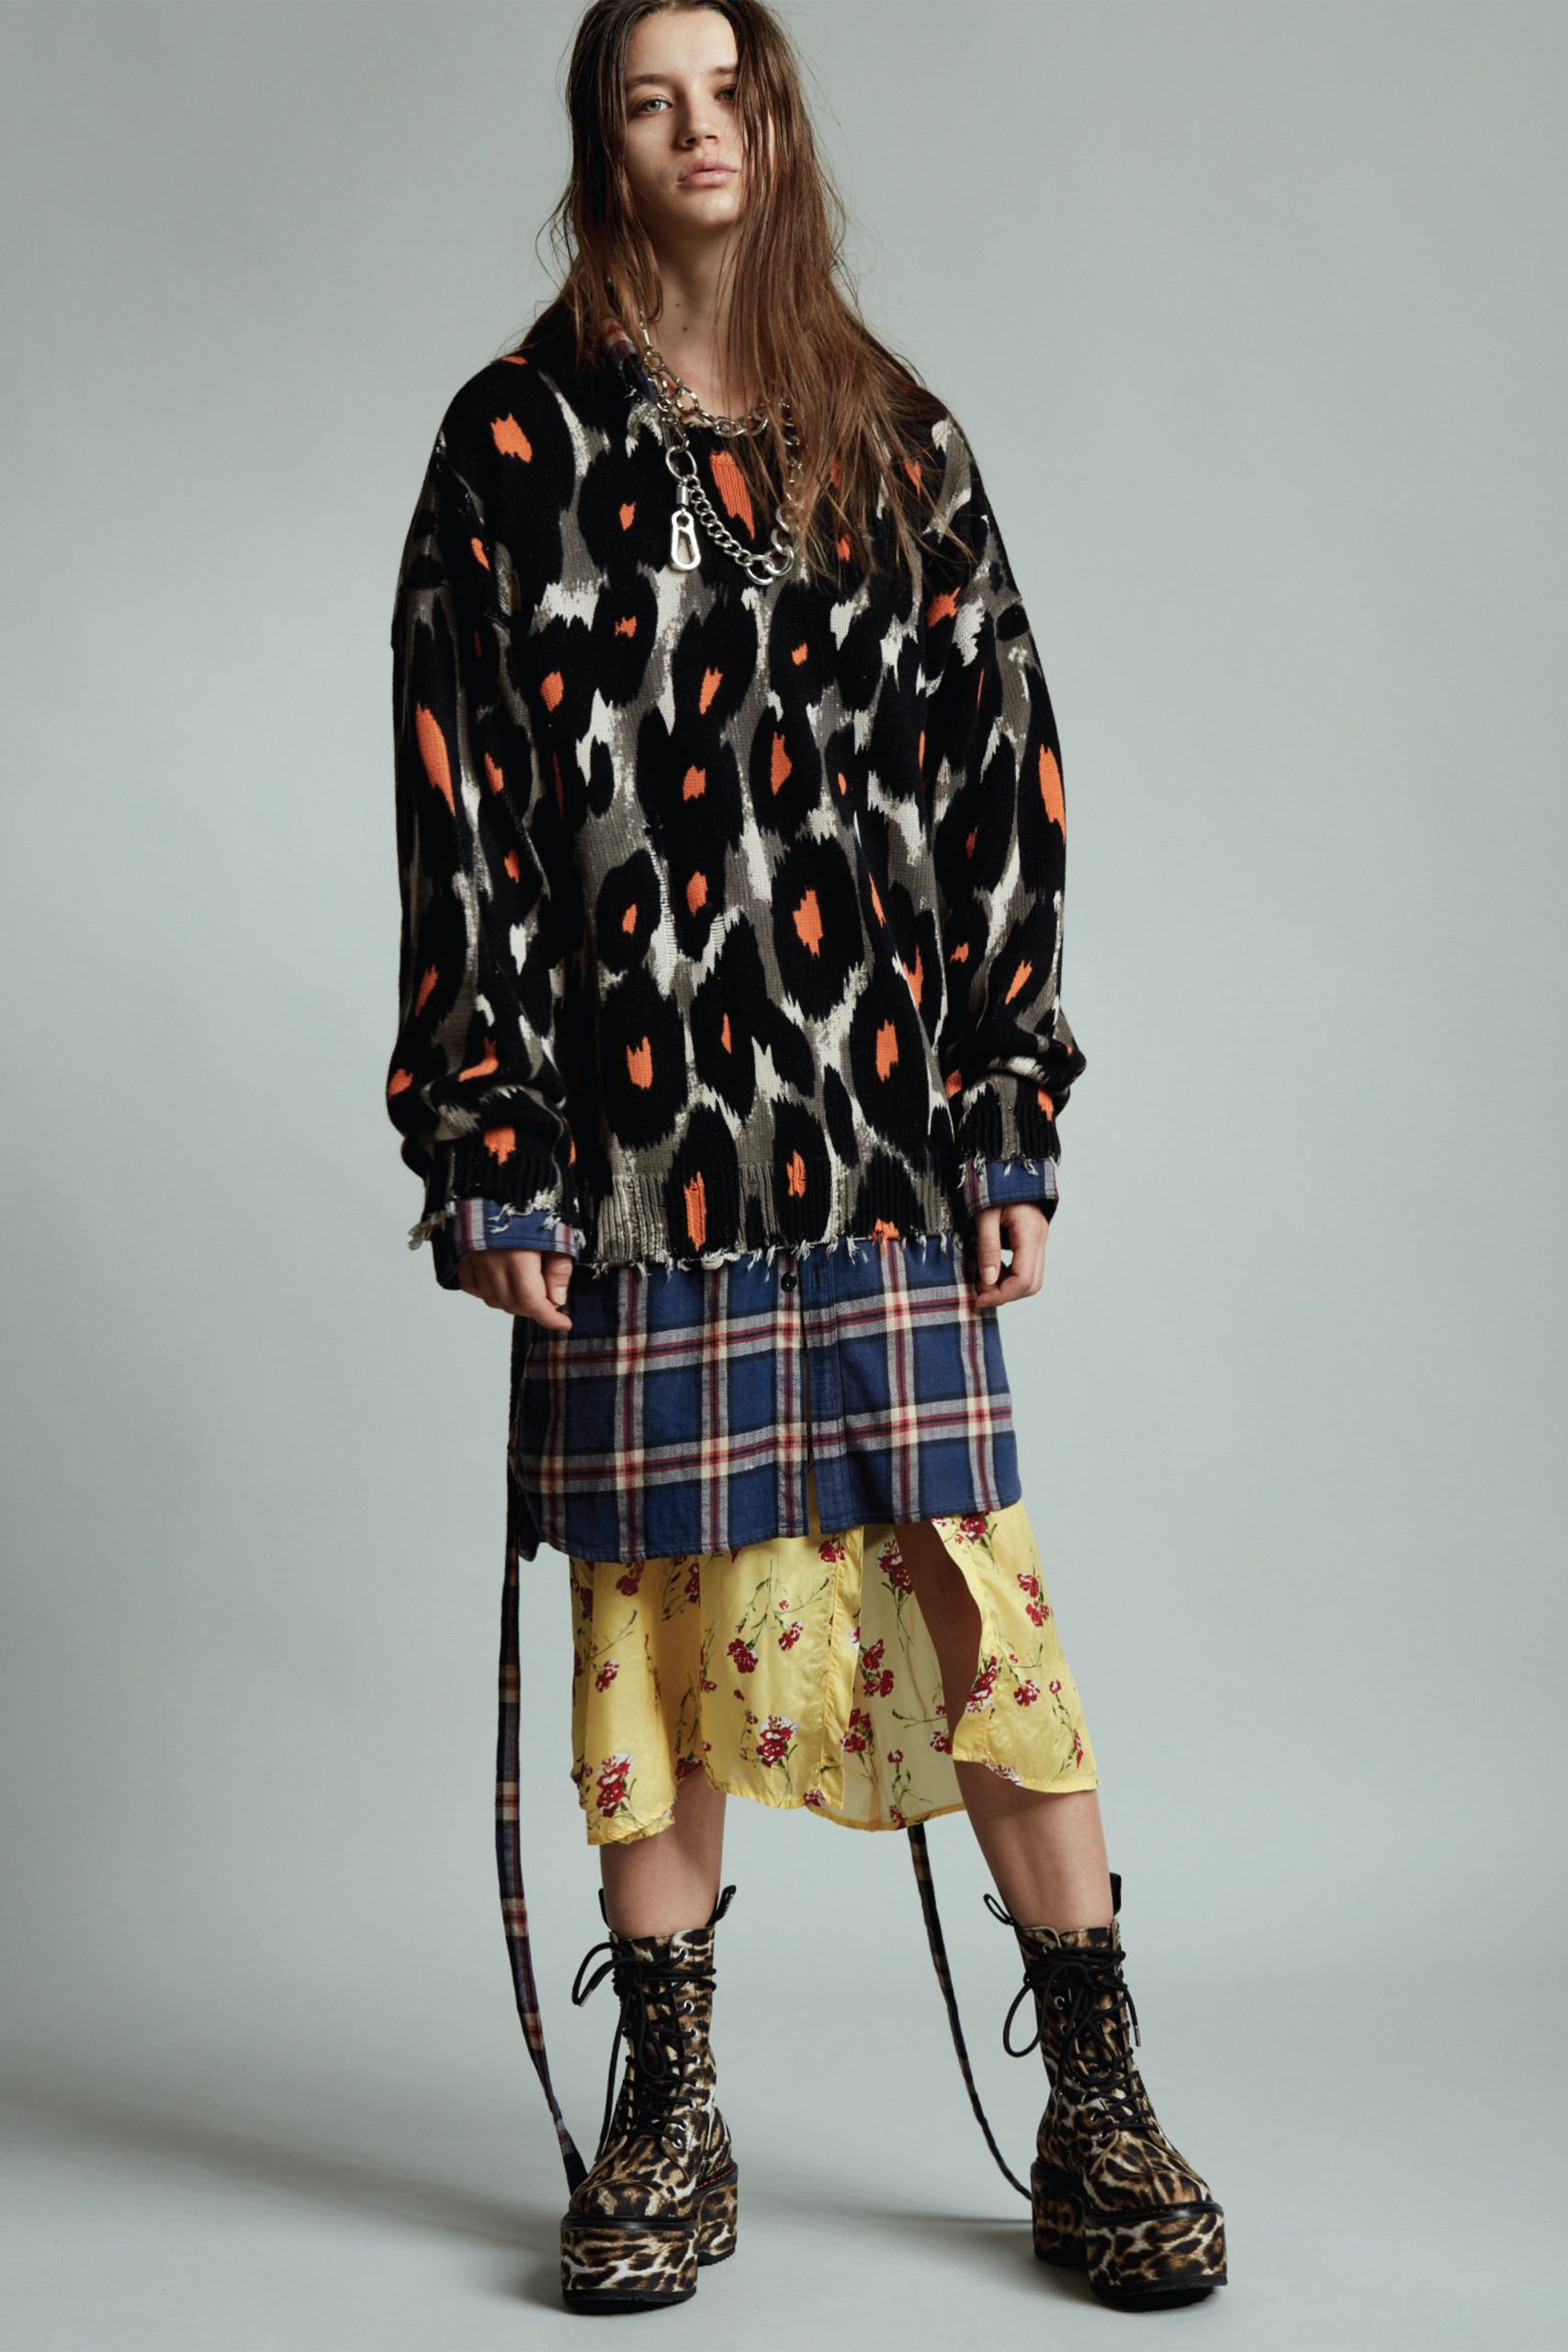 R13 Pre-Fall 2020 Fashion Collection Pictures